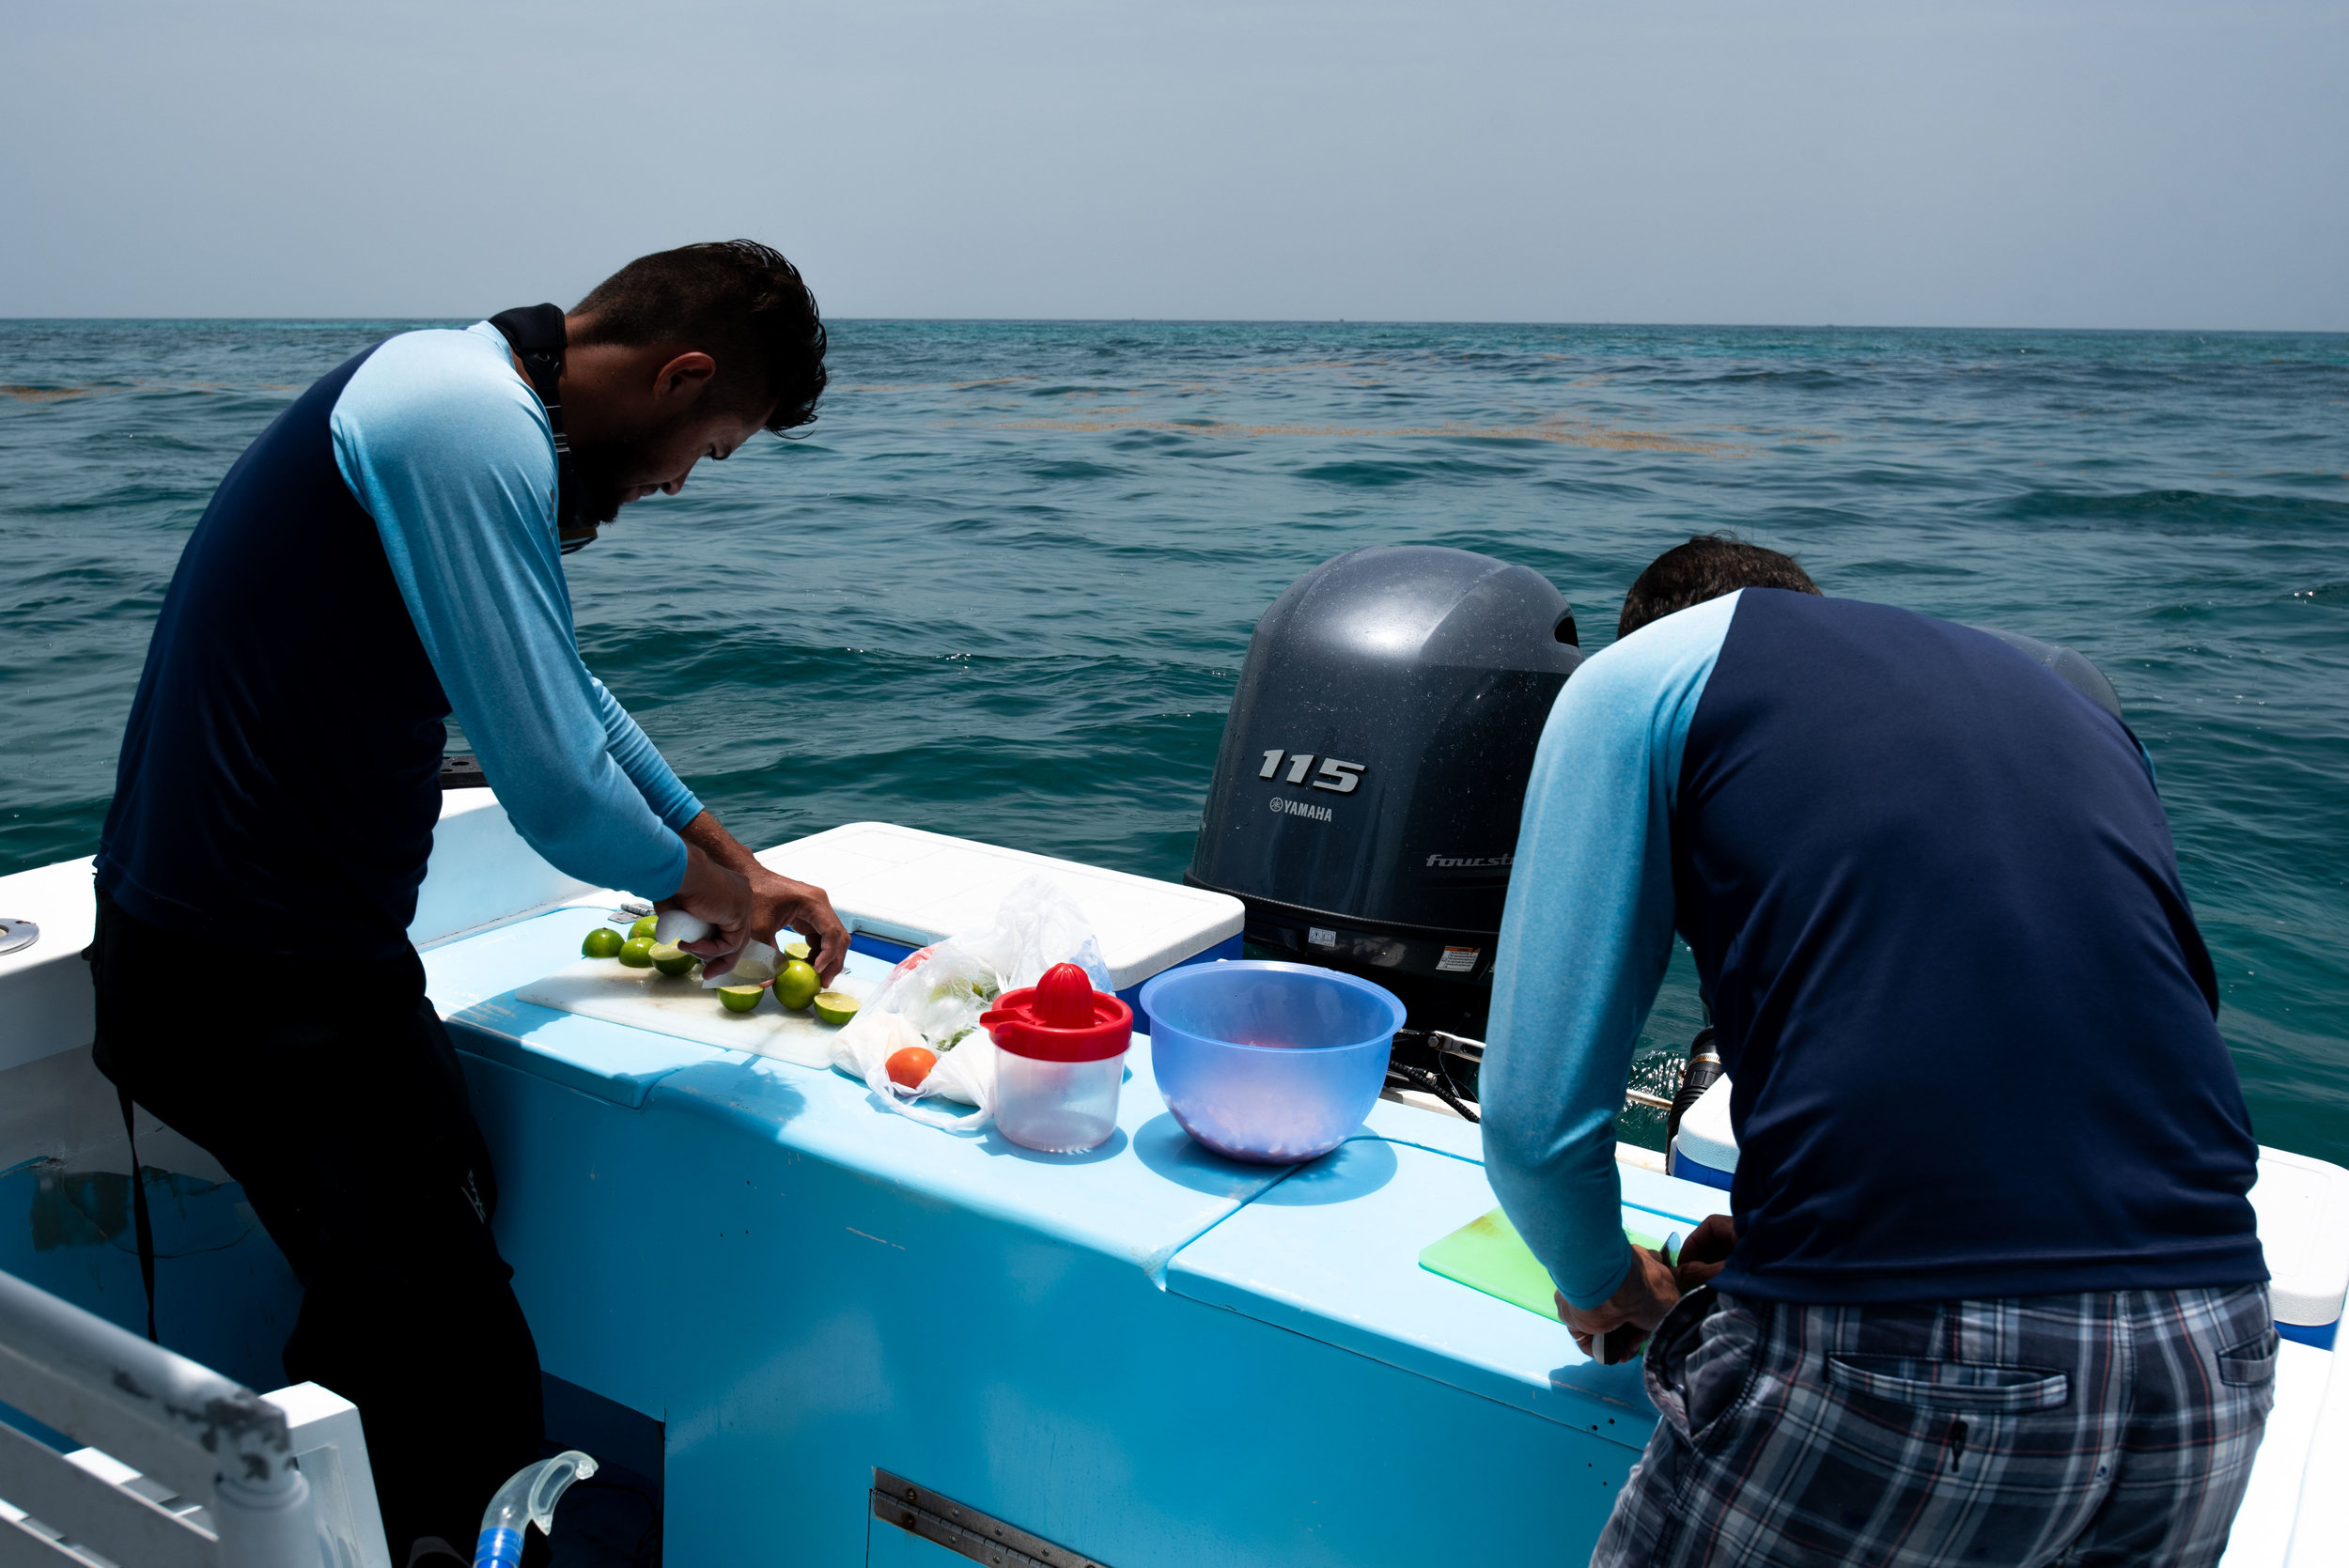 Our guides made us fresh ceviche.